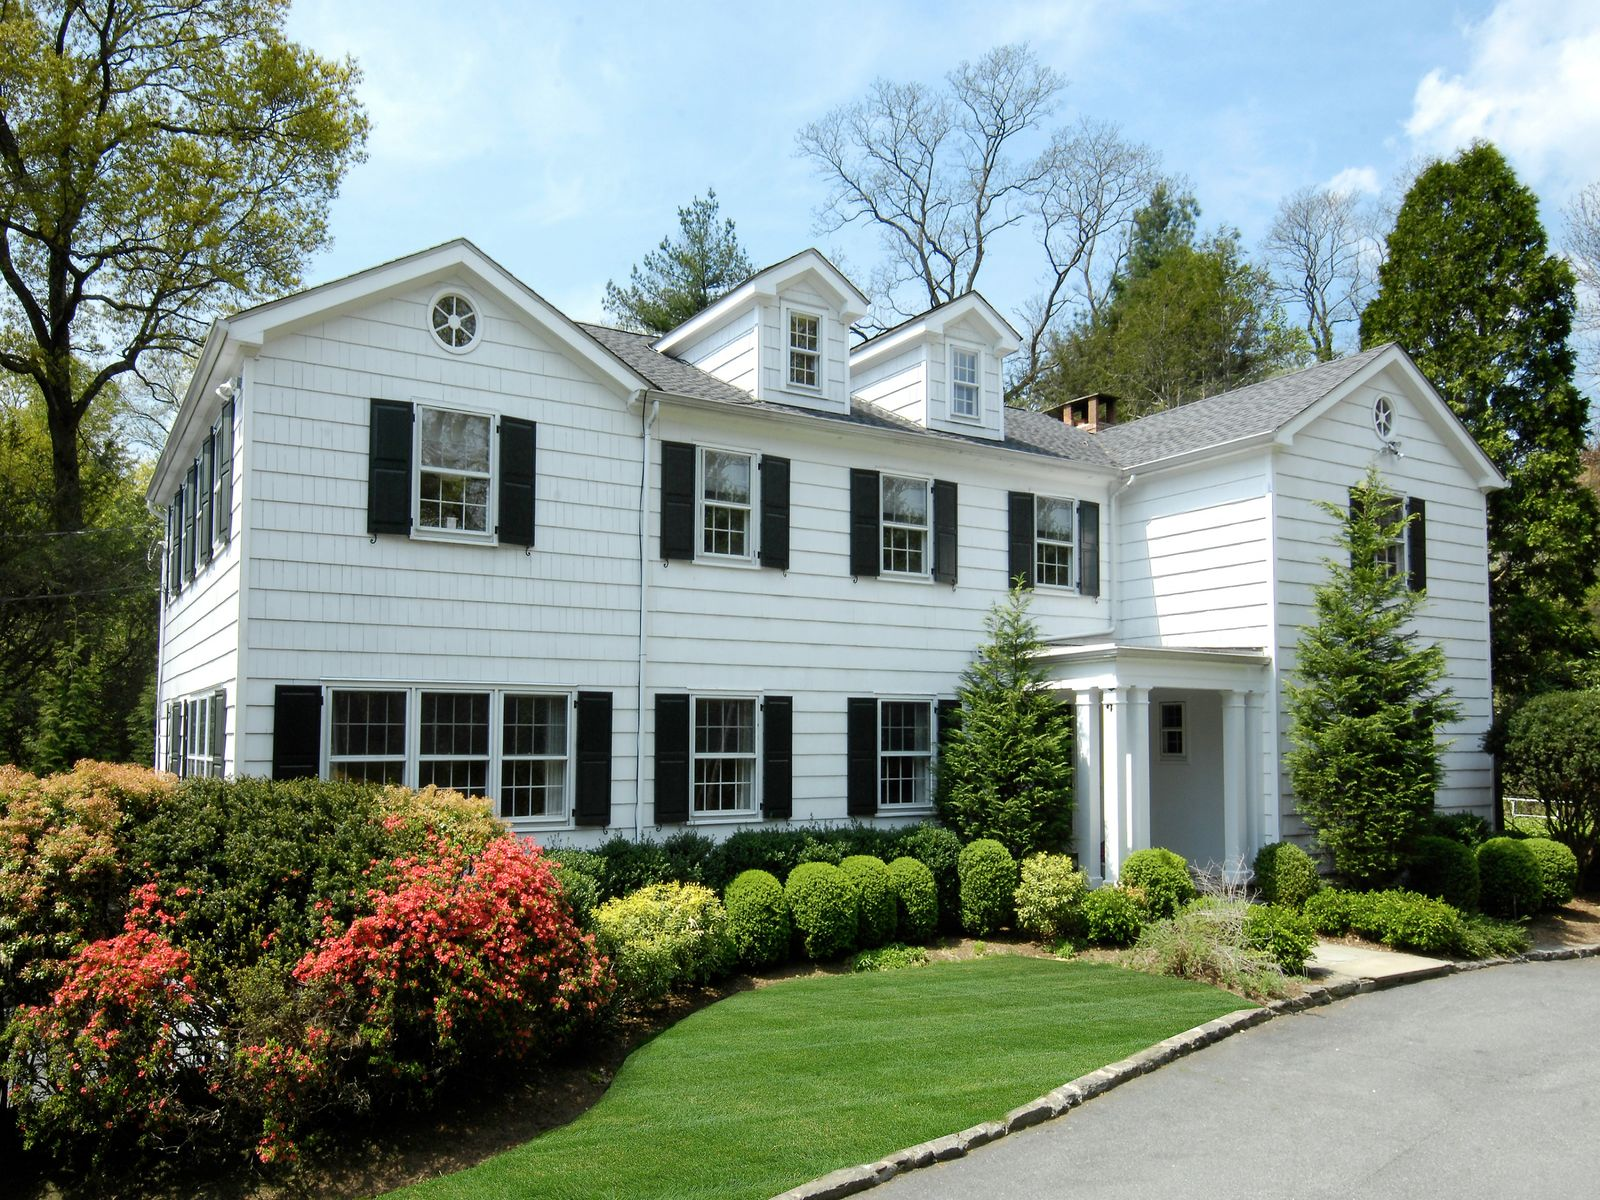 Grace and Tranquility, Greenwich CT Single Family Home - Greenwich Real Estate